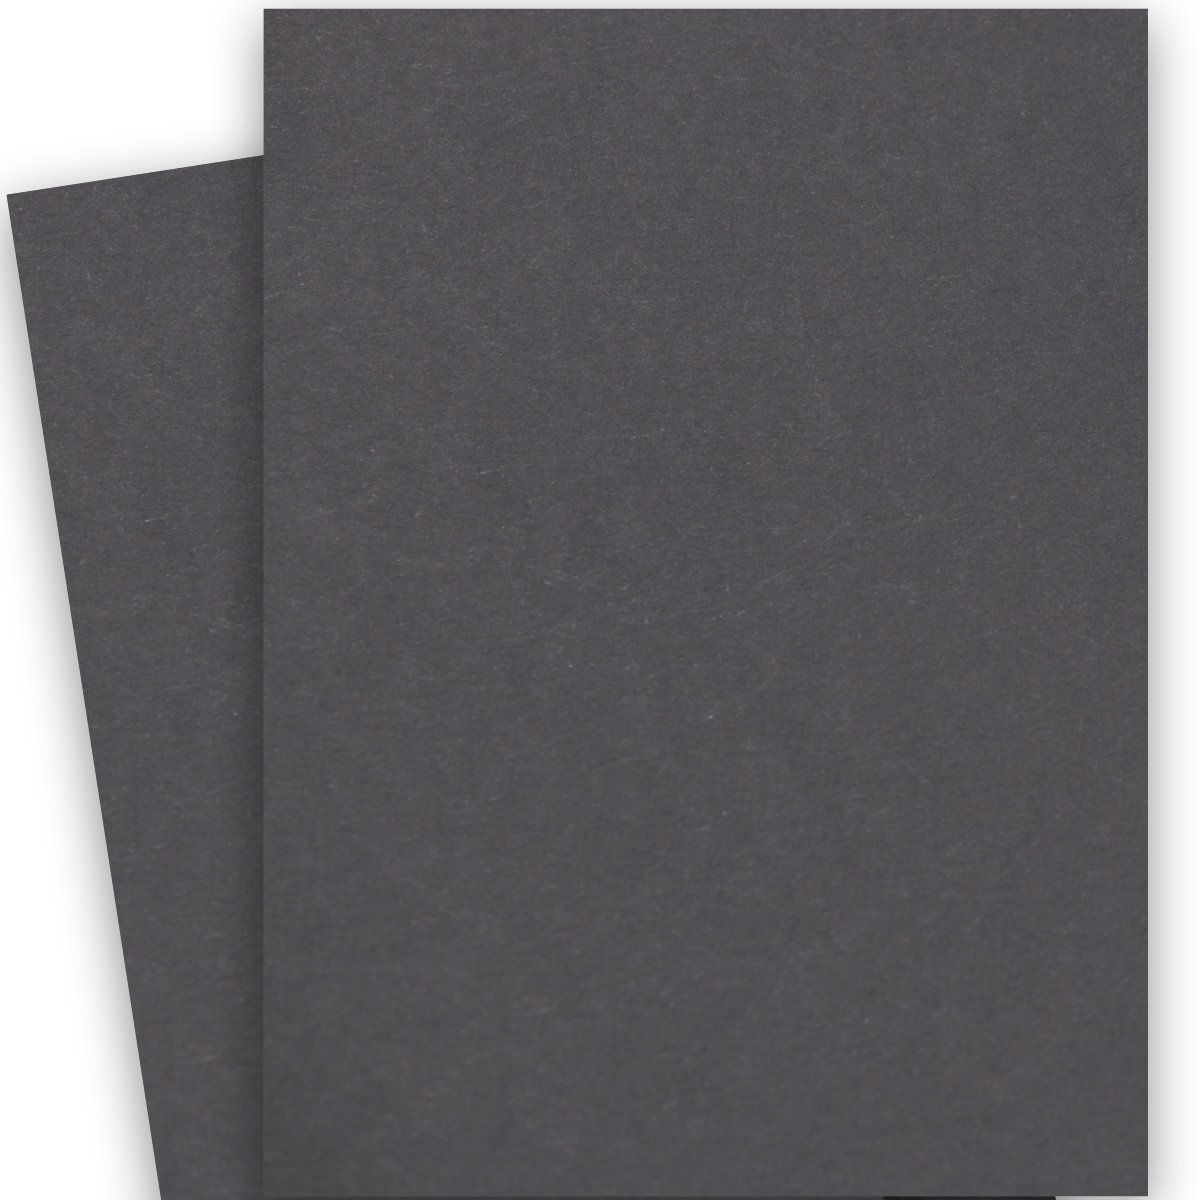 Basis Colors 23 X 35 Paper Grey 28 70lb Text In 2021 Cover Paper Vat Dyeing Cardstock Paper